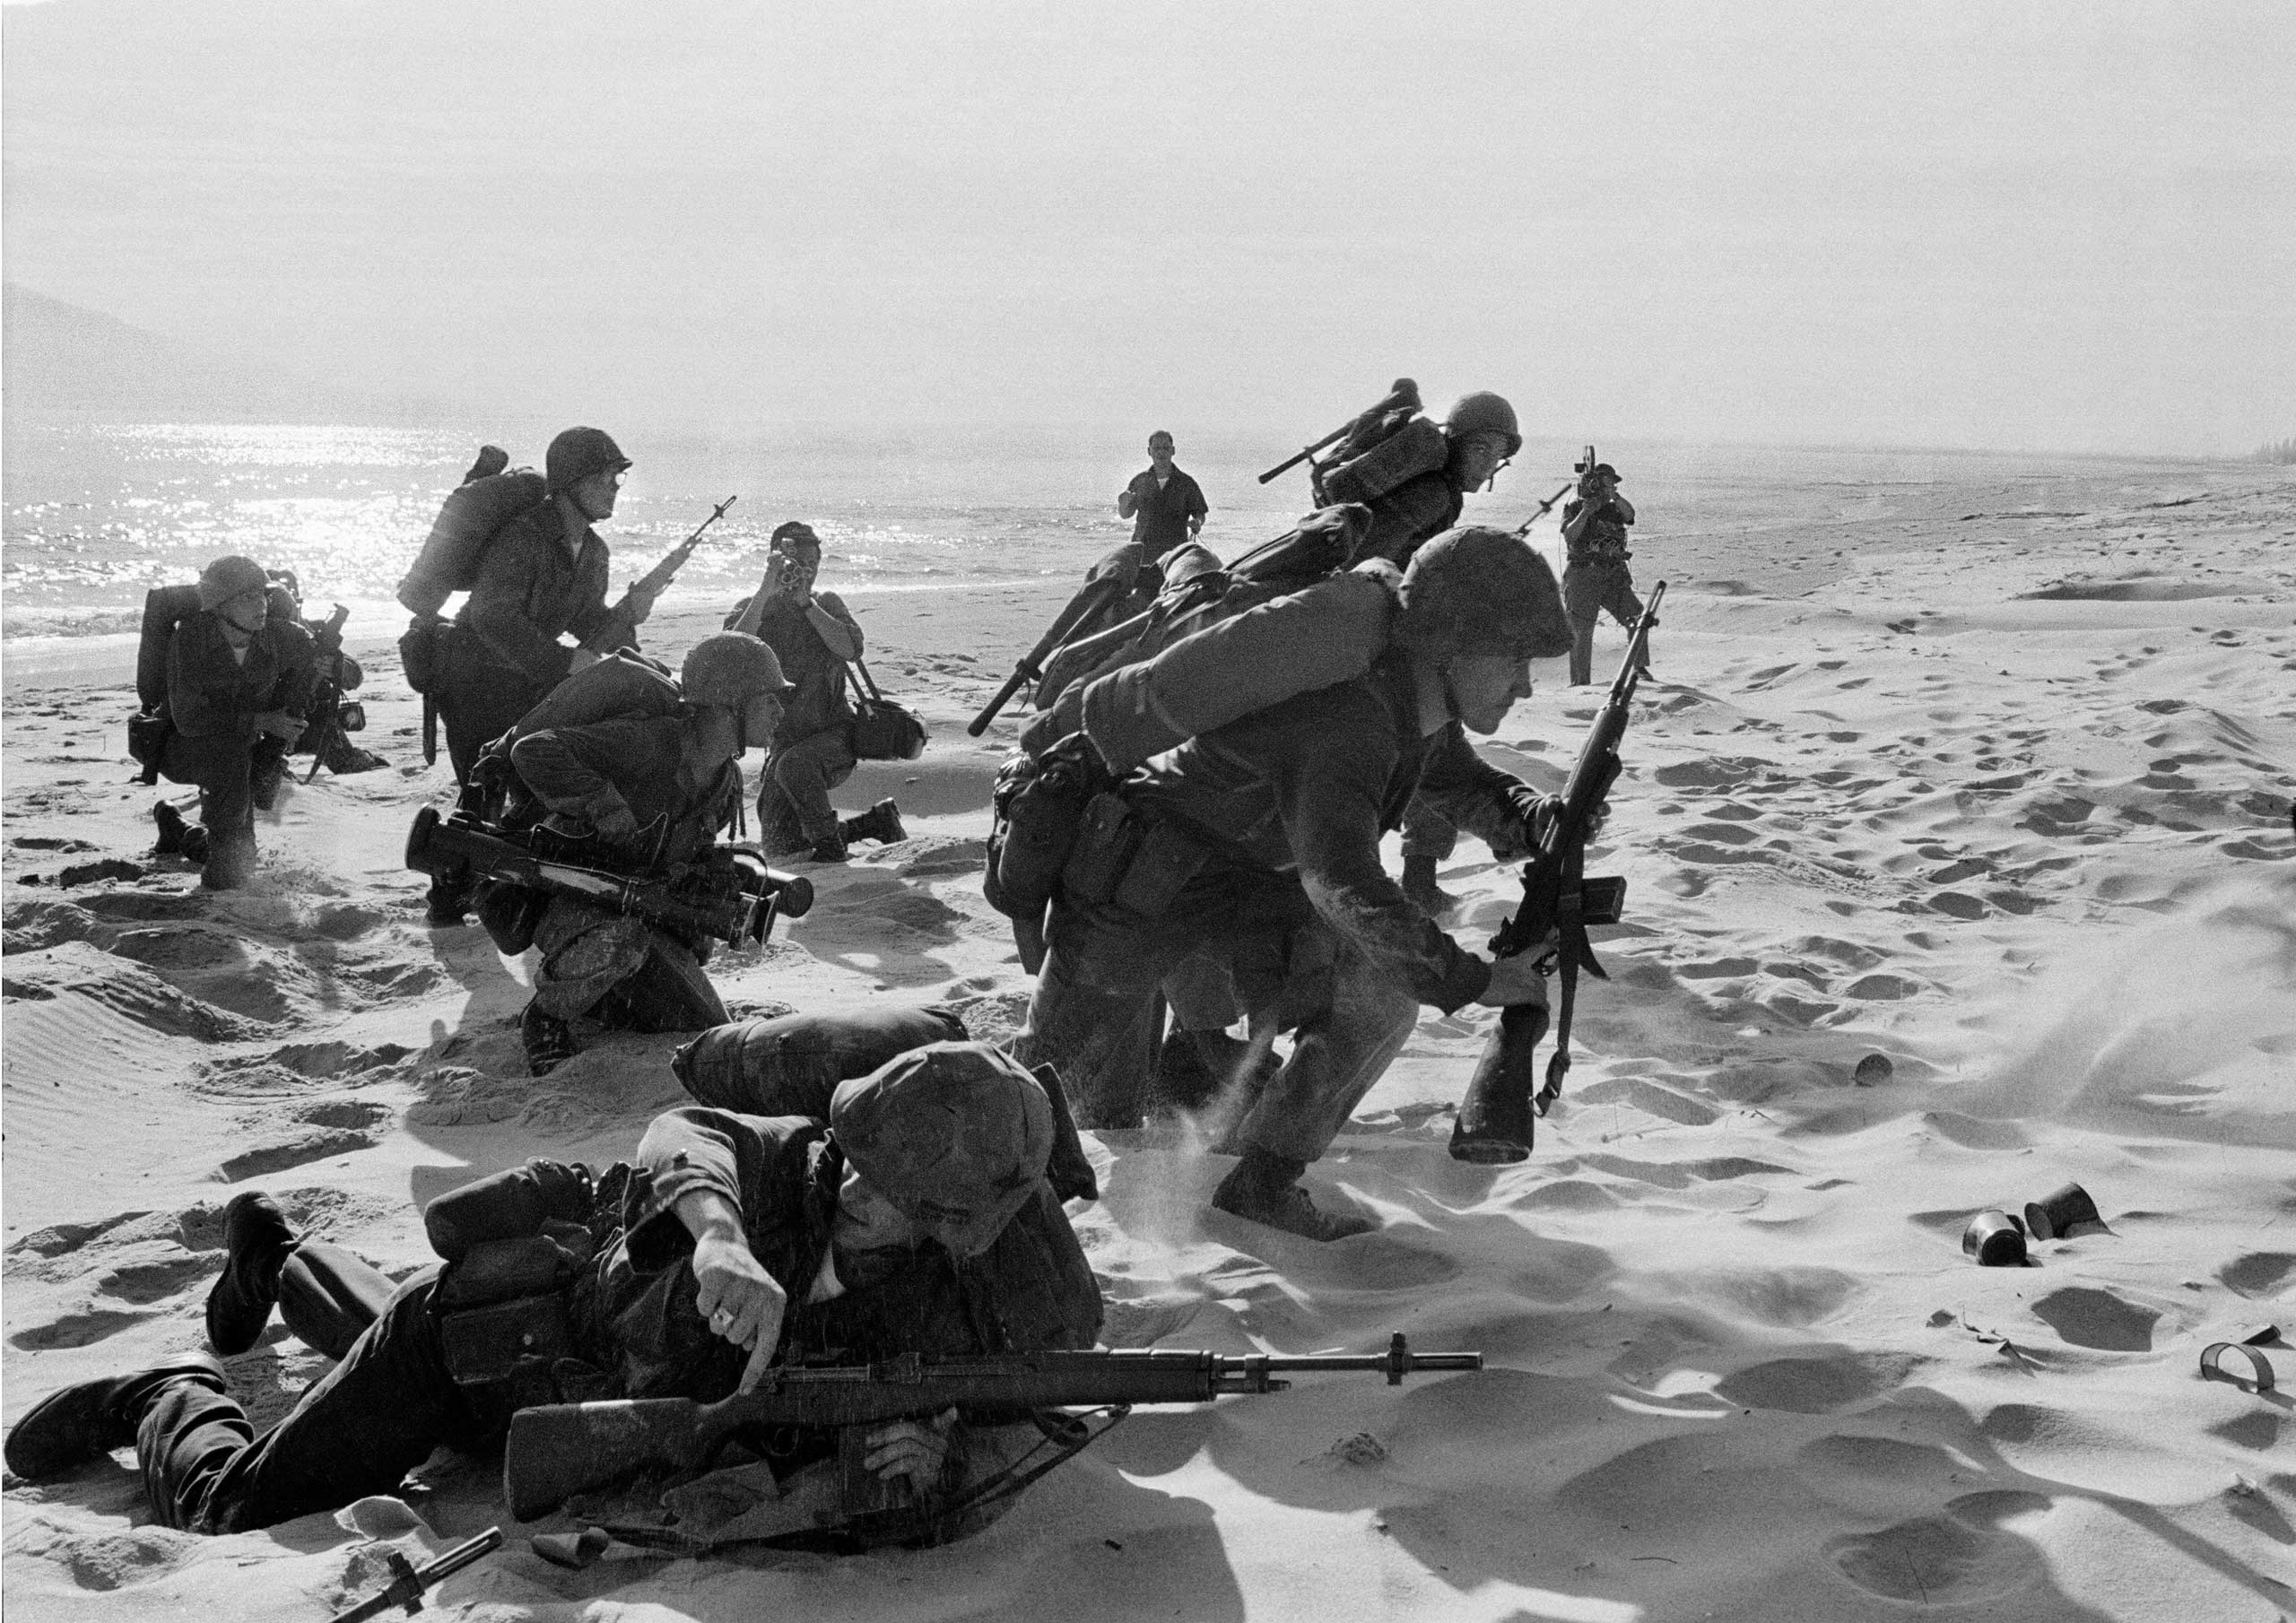 Newly landed U.S. Marines make their way through the sands of Red Beach at Da Nang, on their way to reinforce the air base, as South Vietnamese Rangers battled guerrillas about three miles south, on April 10, 1965.